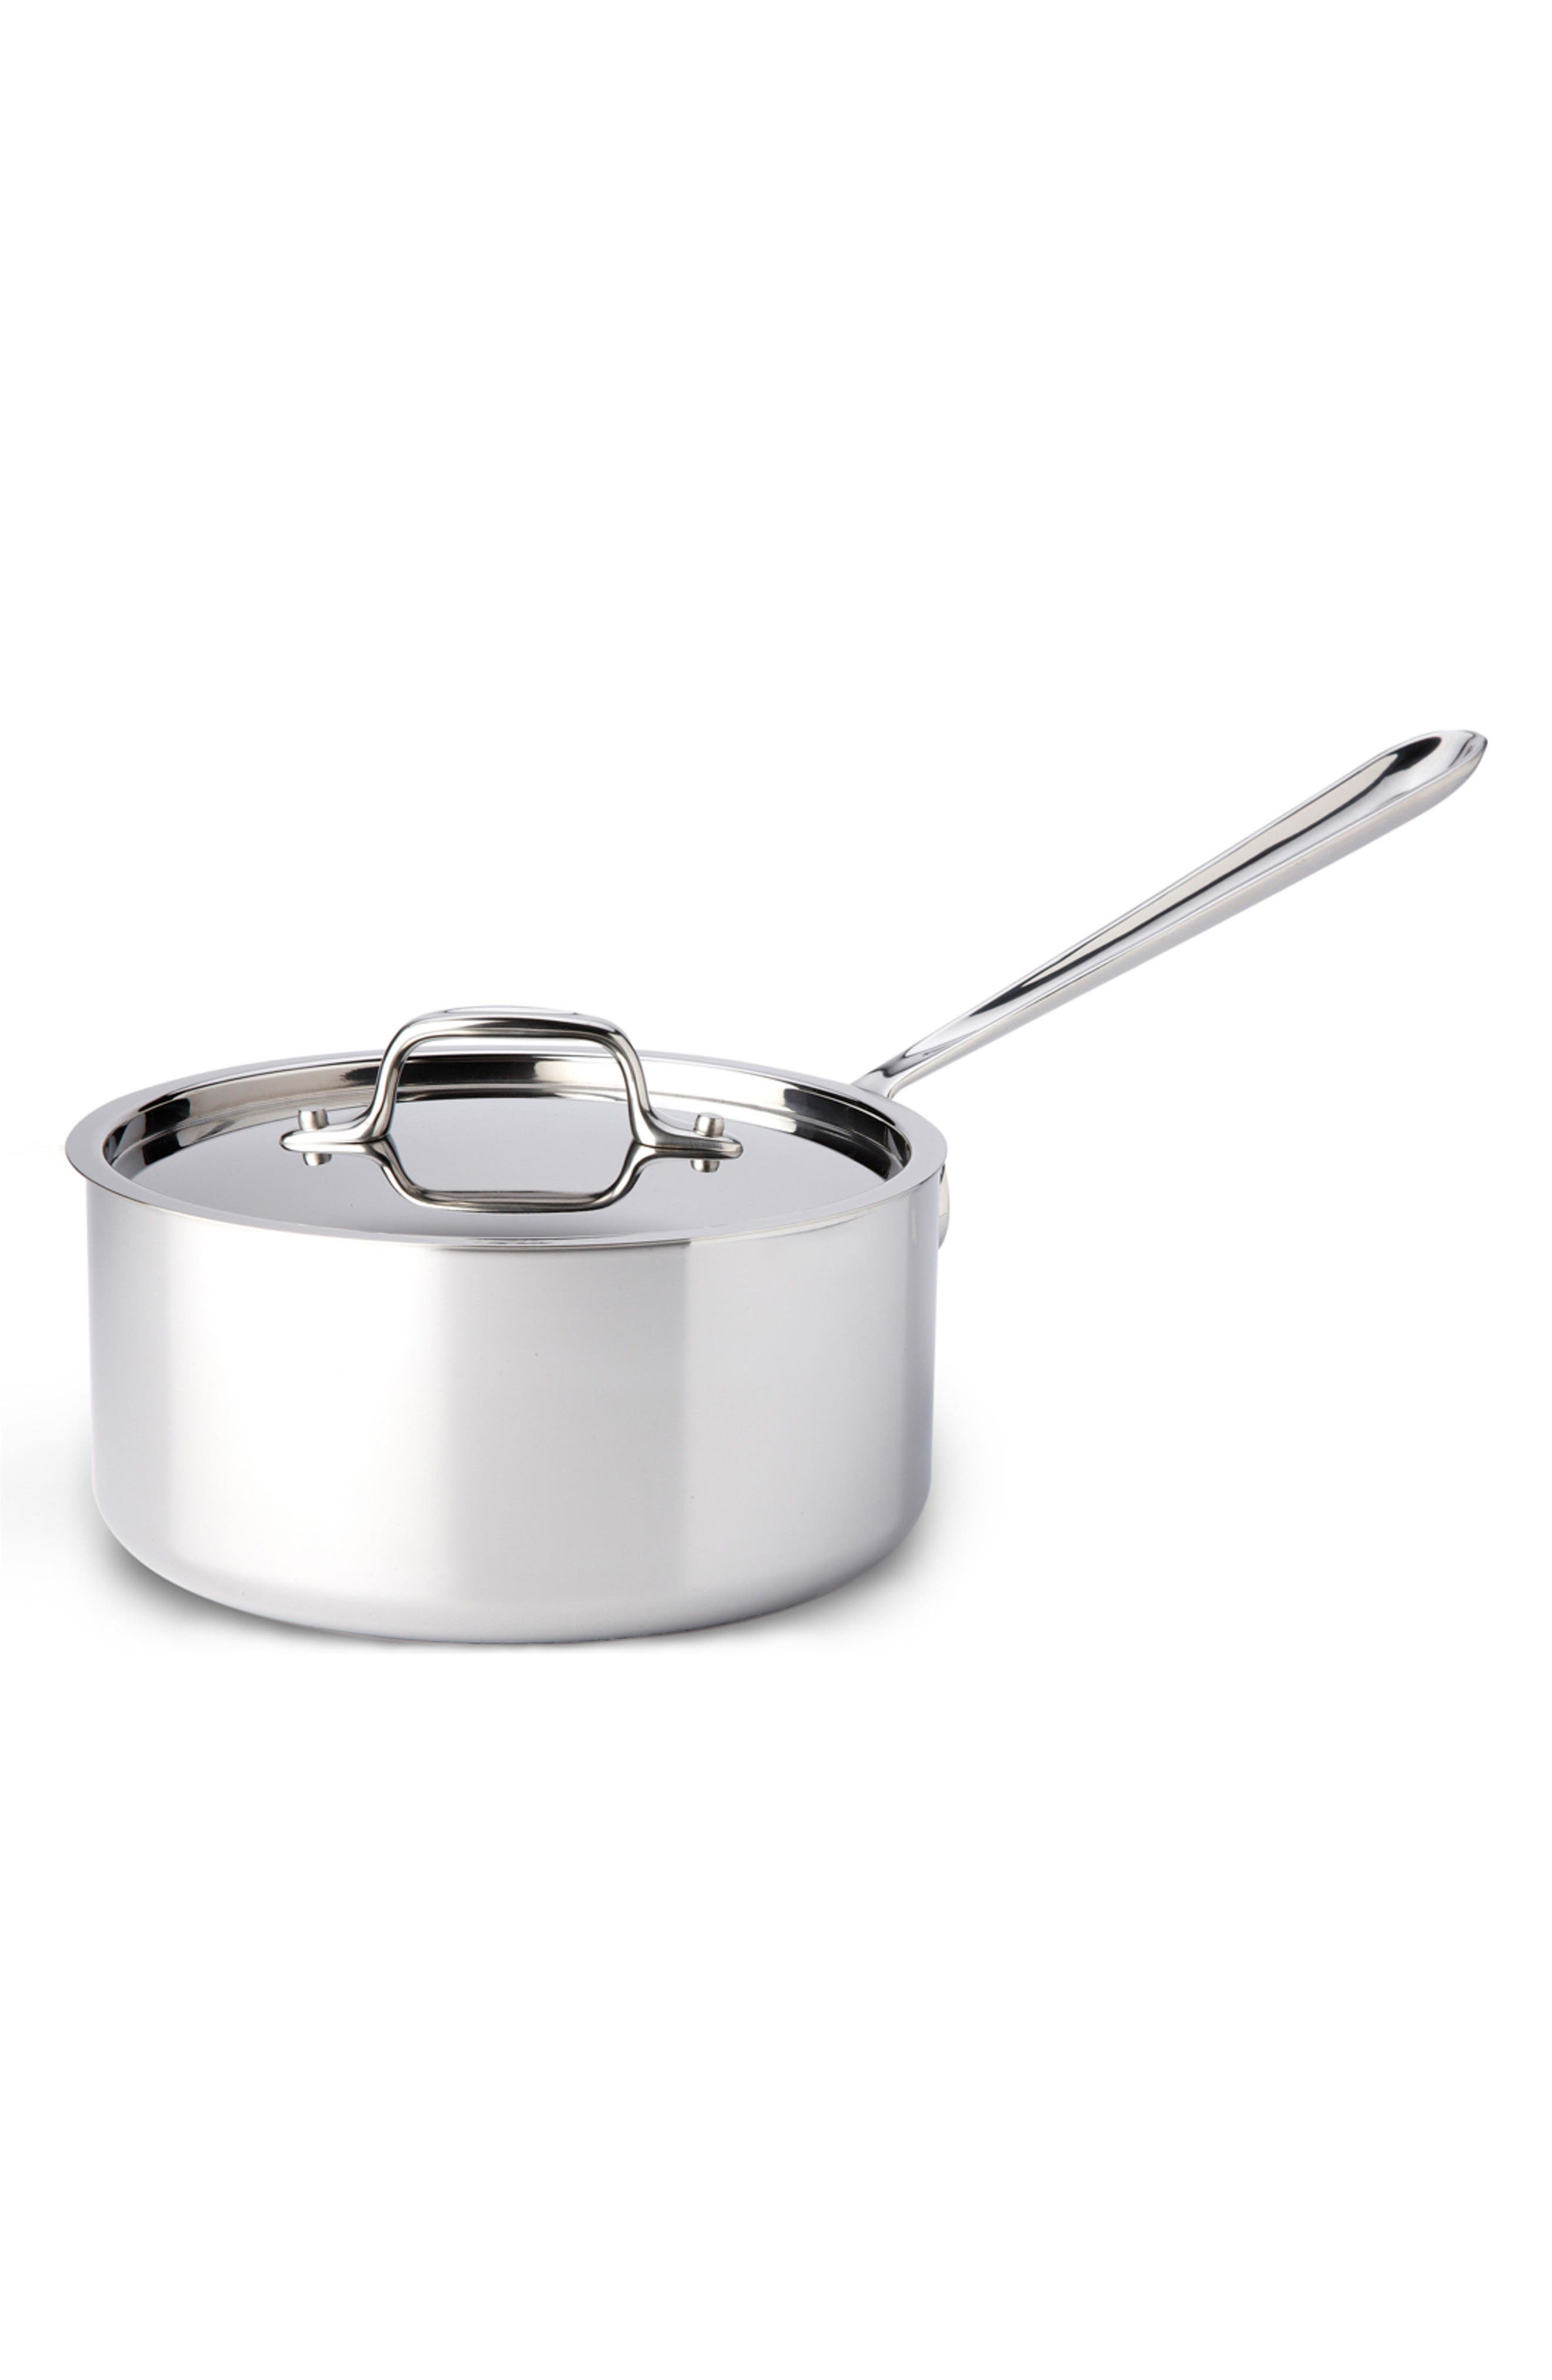 3-Quart Brushed Stainless Steel Sauce Pan,                             Main thumbnail 1, color,                             Stainless